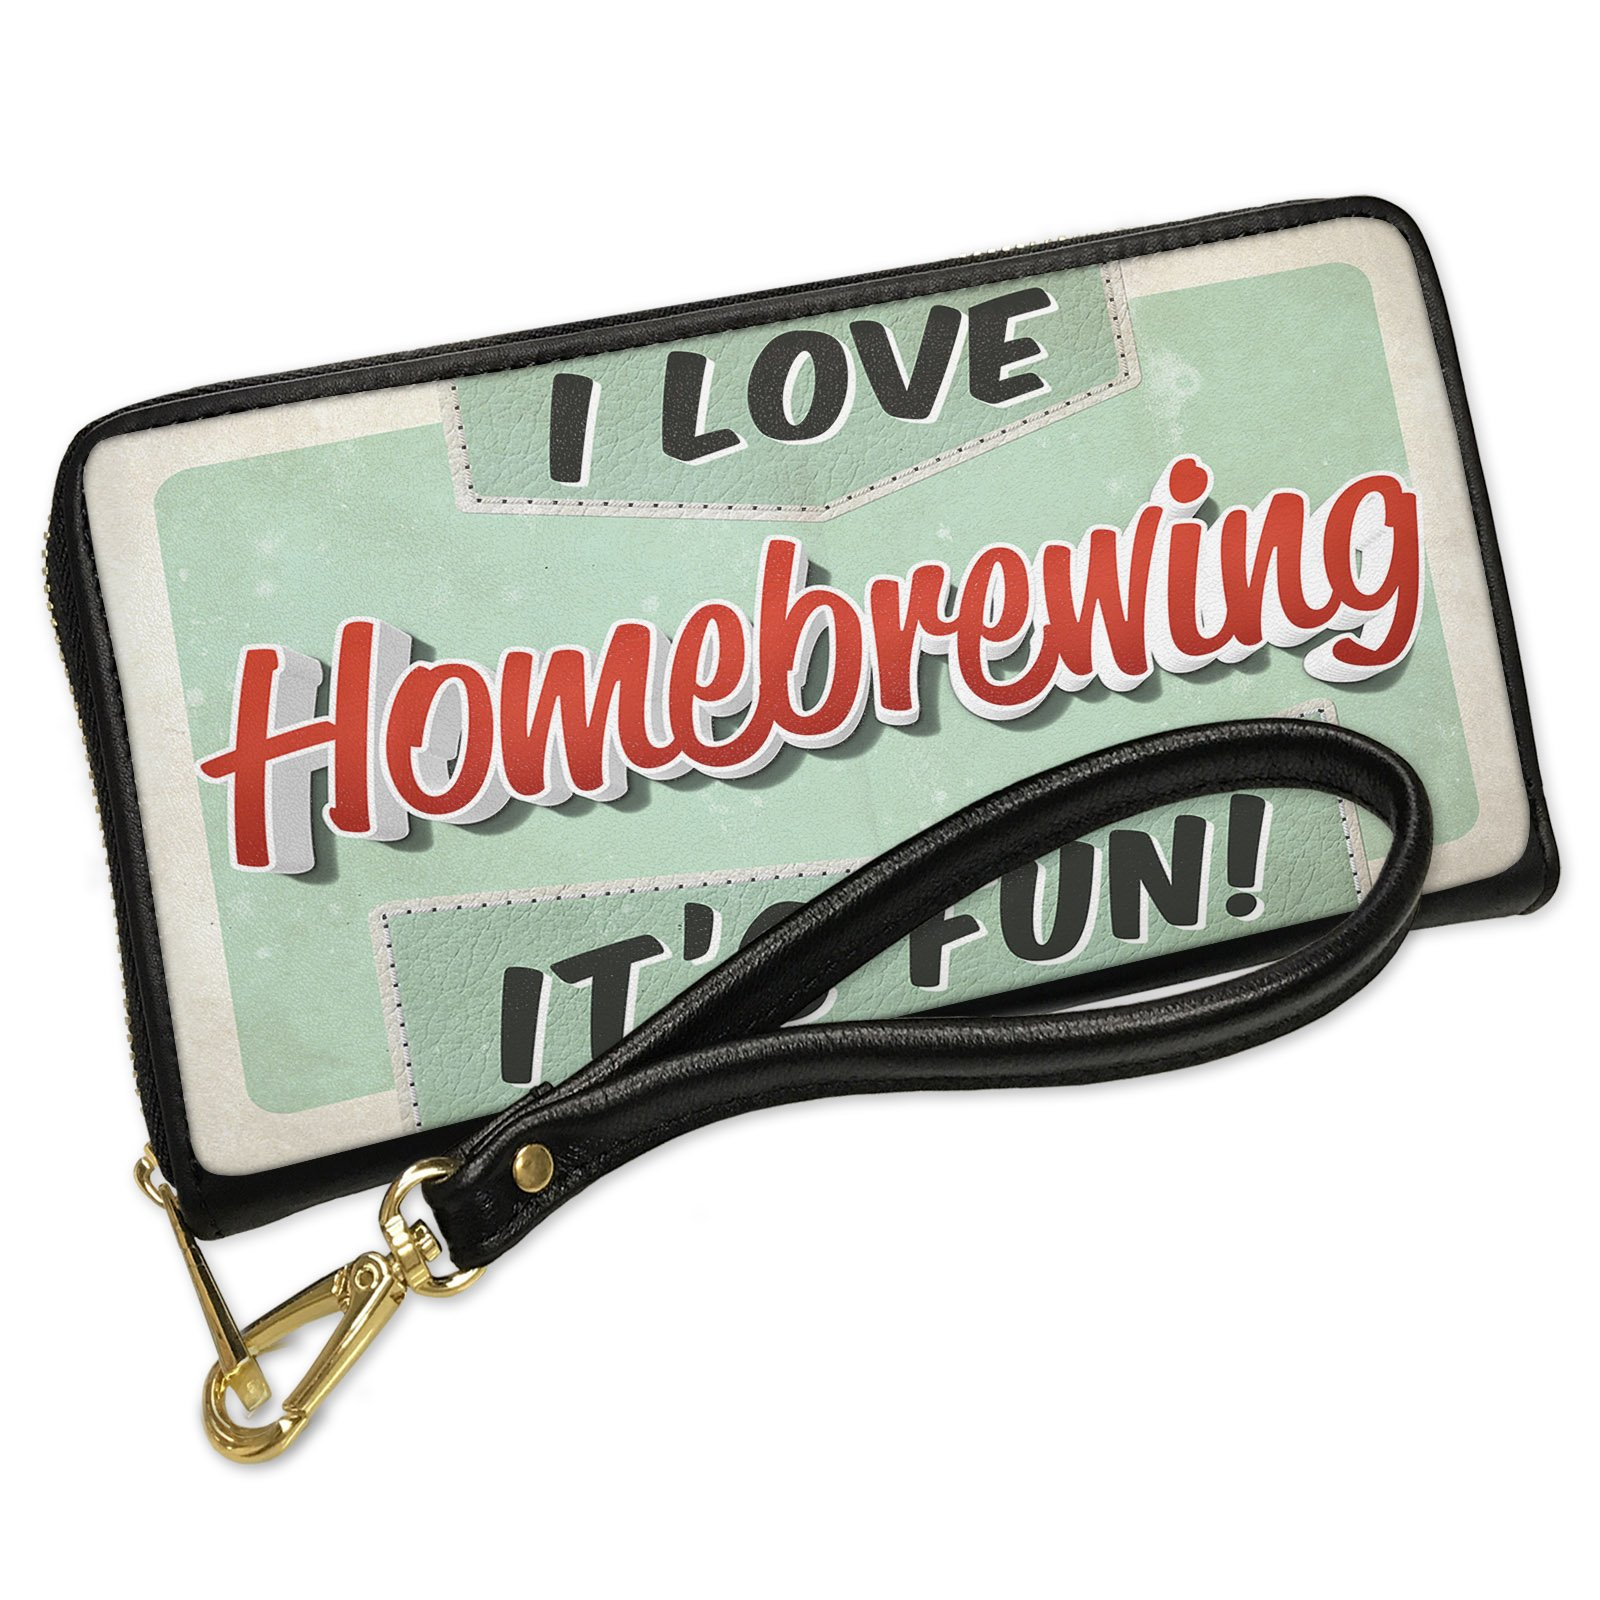 Wallet Clutch I Love Home brewing, Vintage design with Removable Wristlet Strap Neonblond